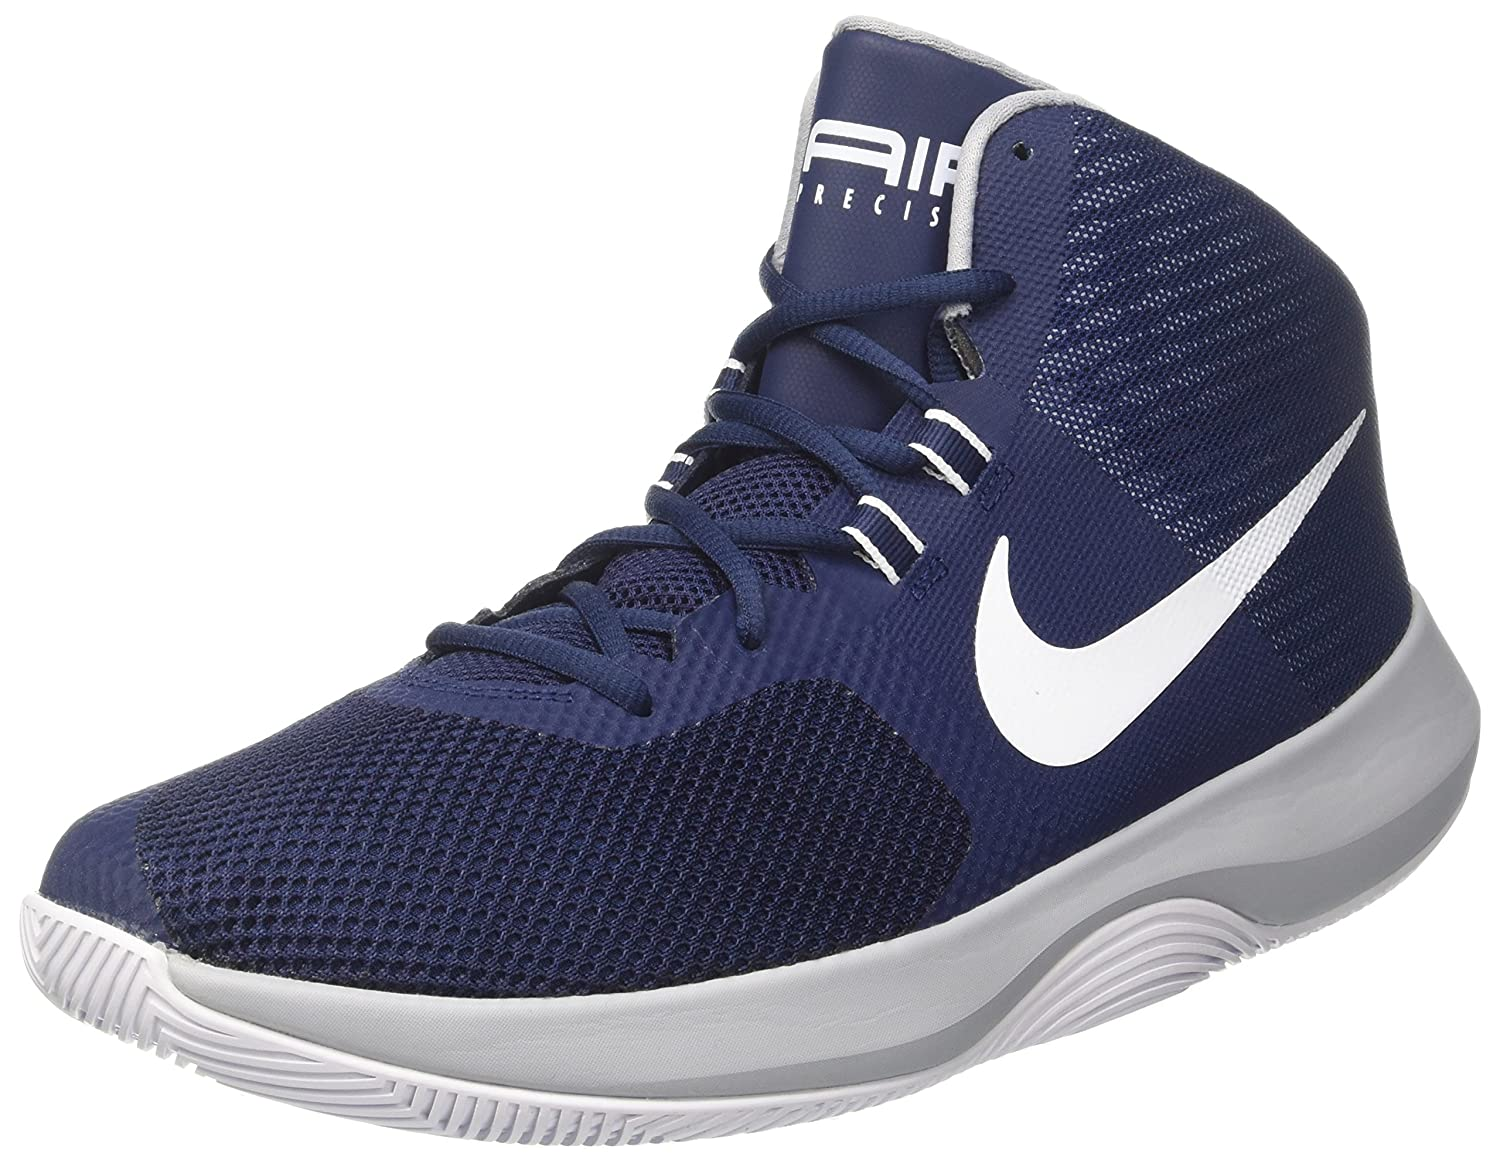 big sale 4dc0d 60932 Nike Men s Air Precision Basketball Shoe  Buy Online at Low Prices in India  - Amazon.in